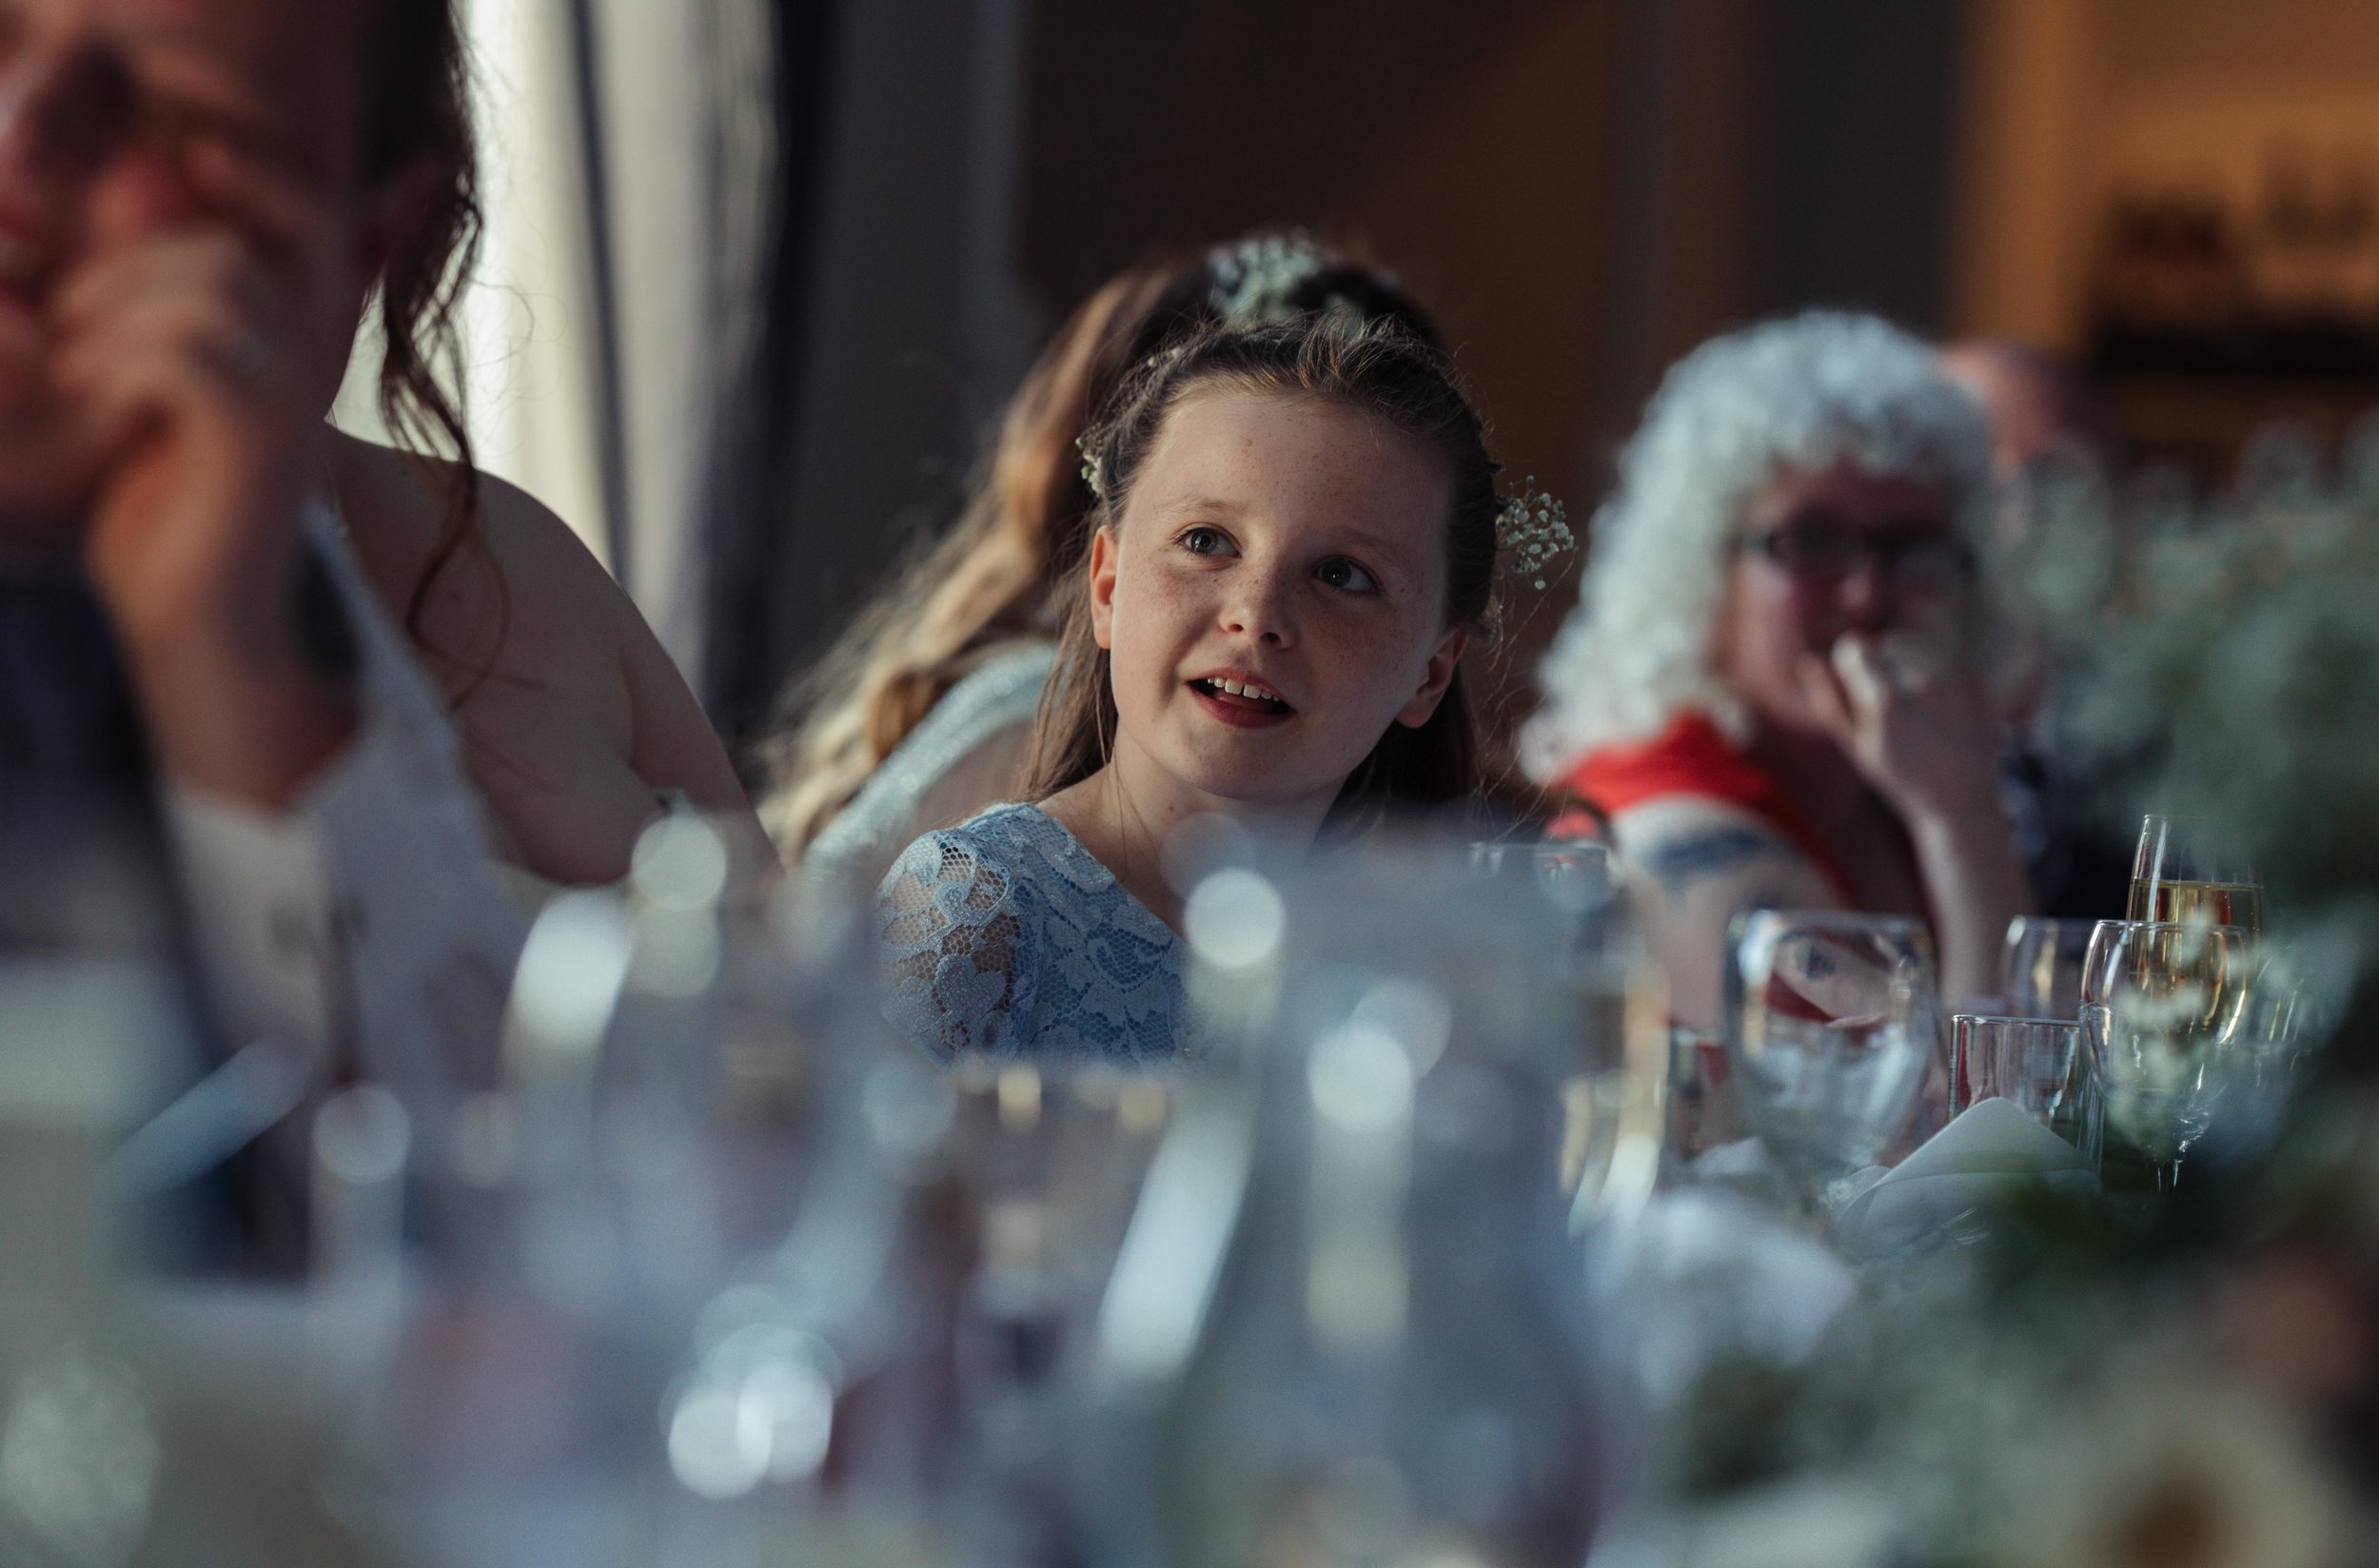 The bride and grooms daughter has a smile while she is being talked about during the wedding speeches